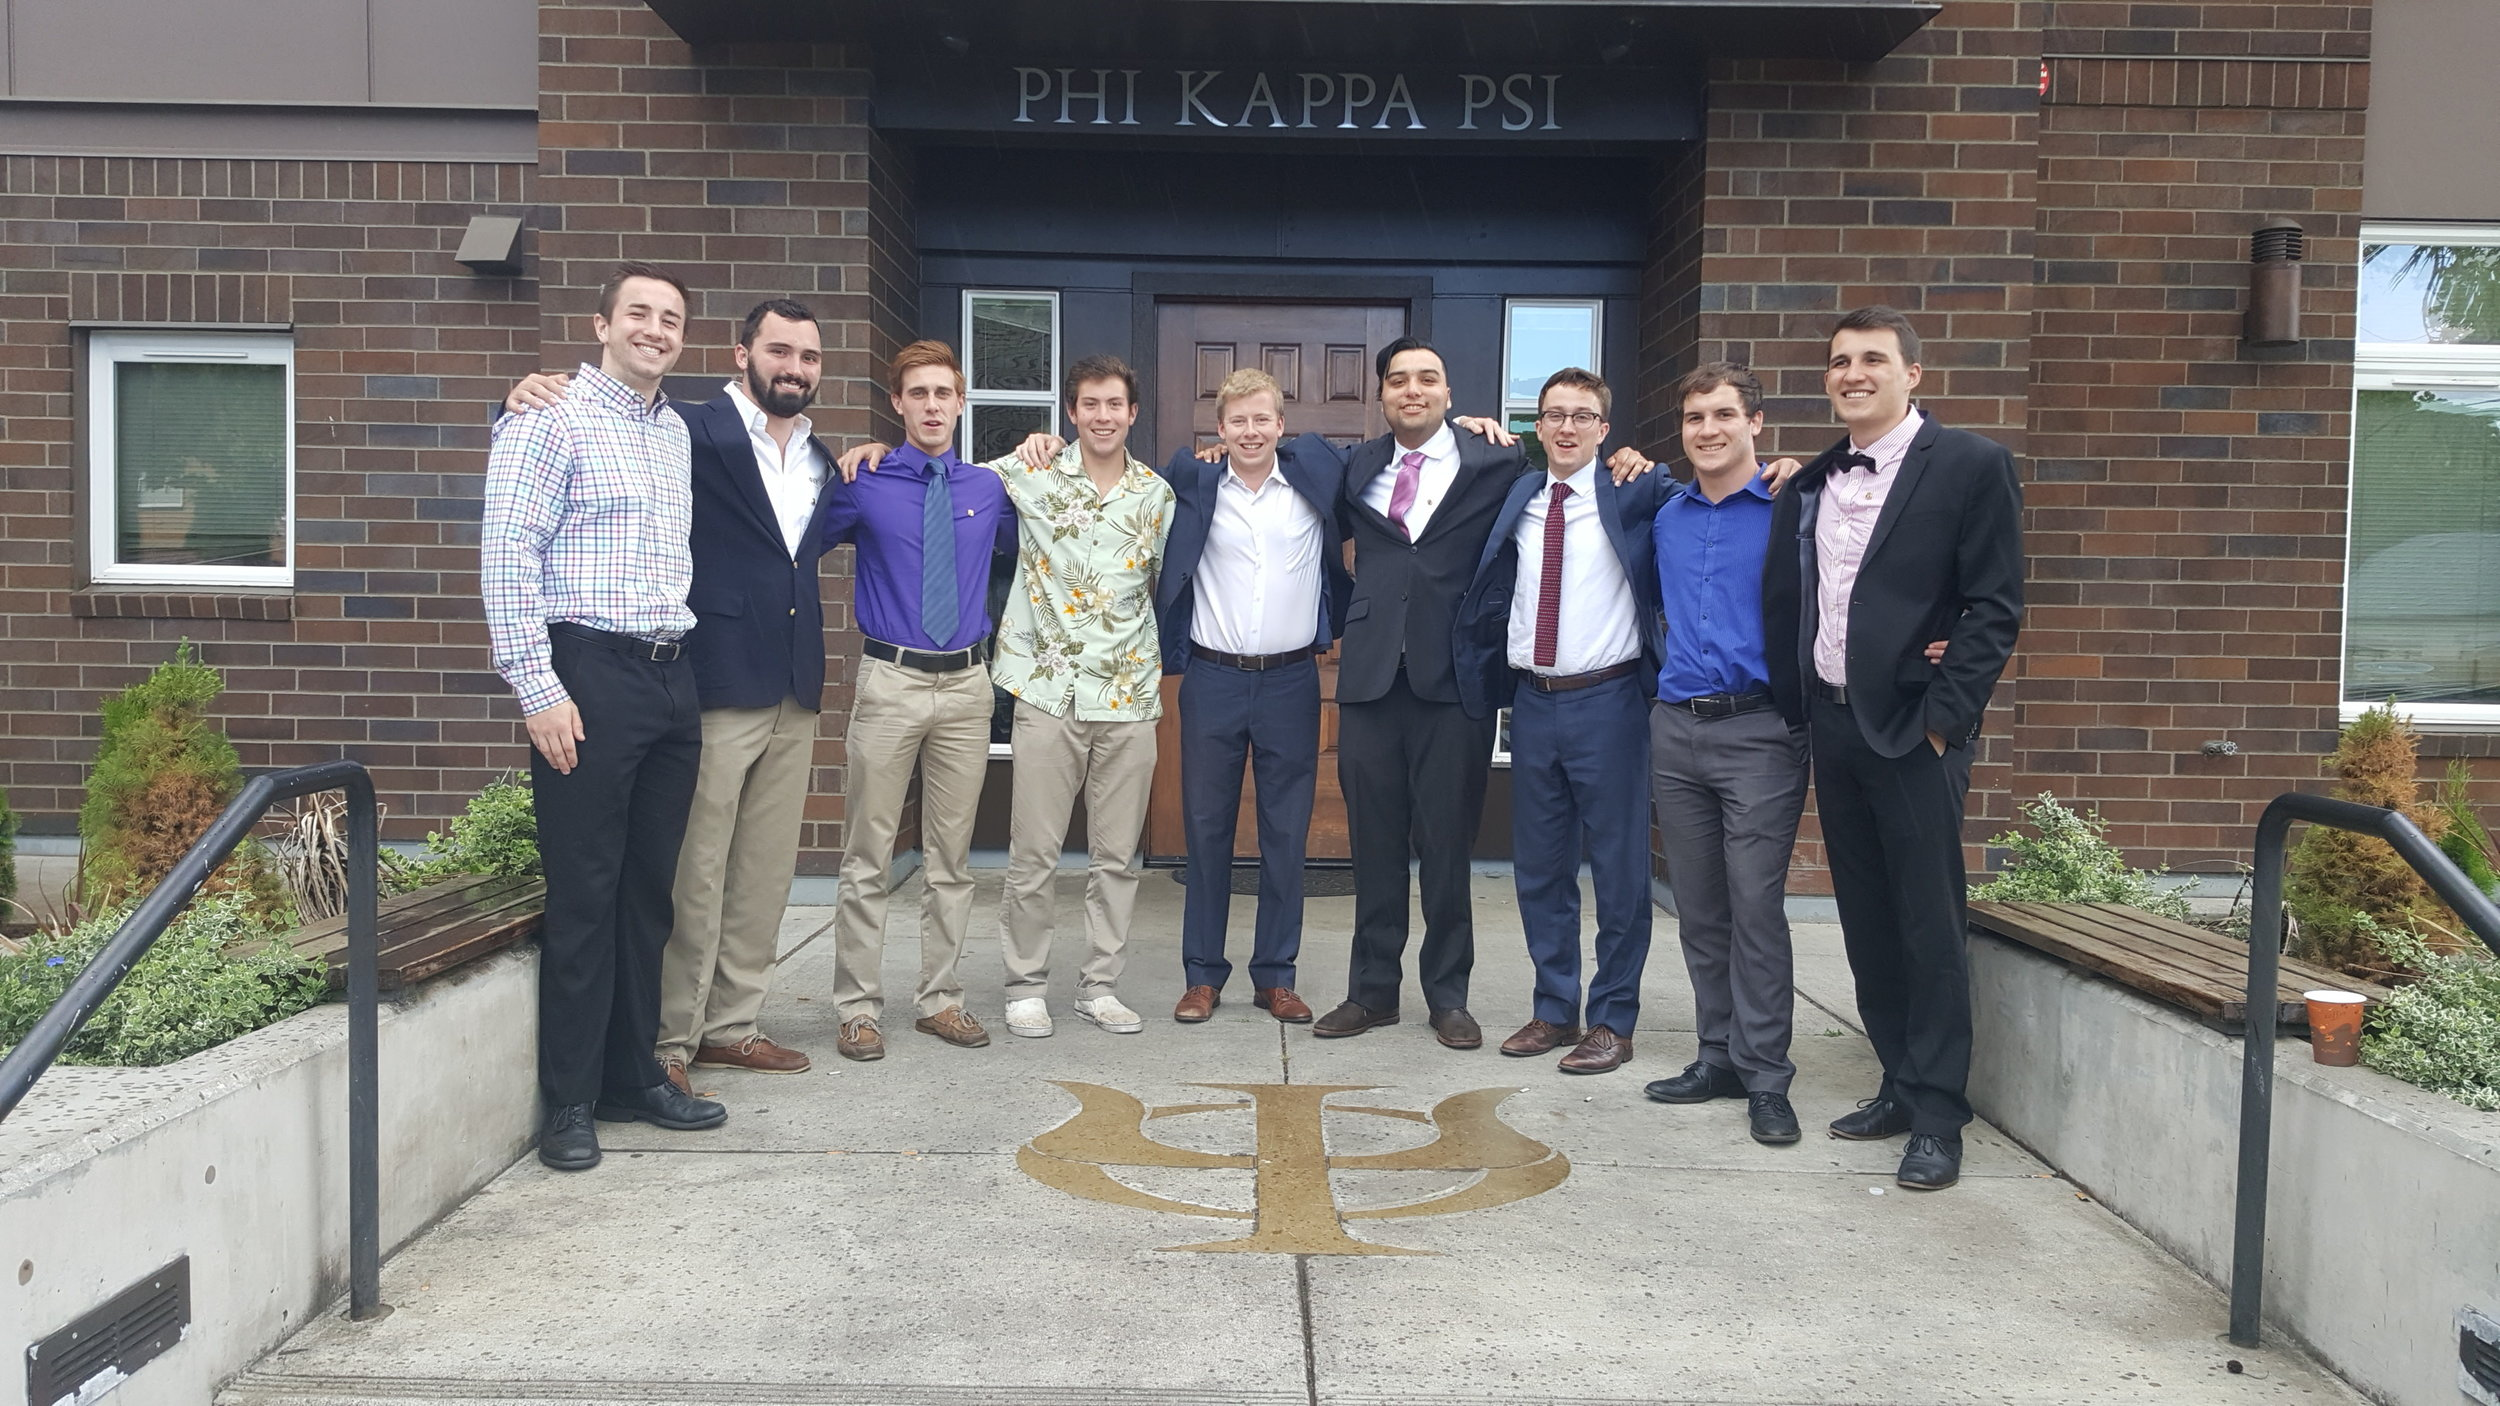 These 9 brothers graduated in June of 2017, recently becoming alumni of the Oregon Beta chapter of Phi Kappa Psi